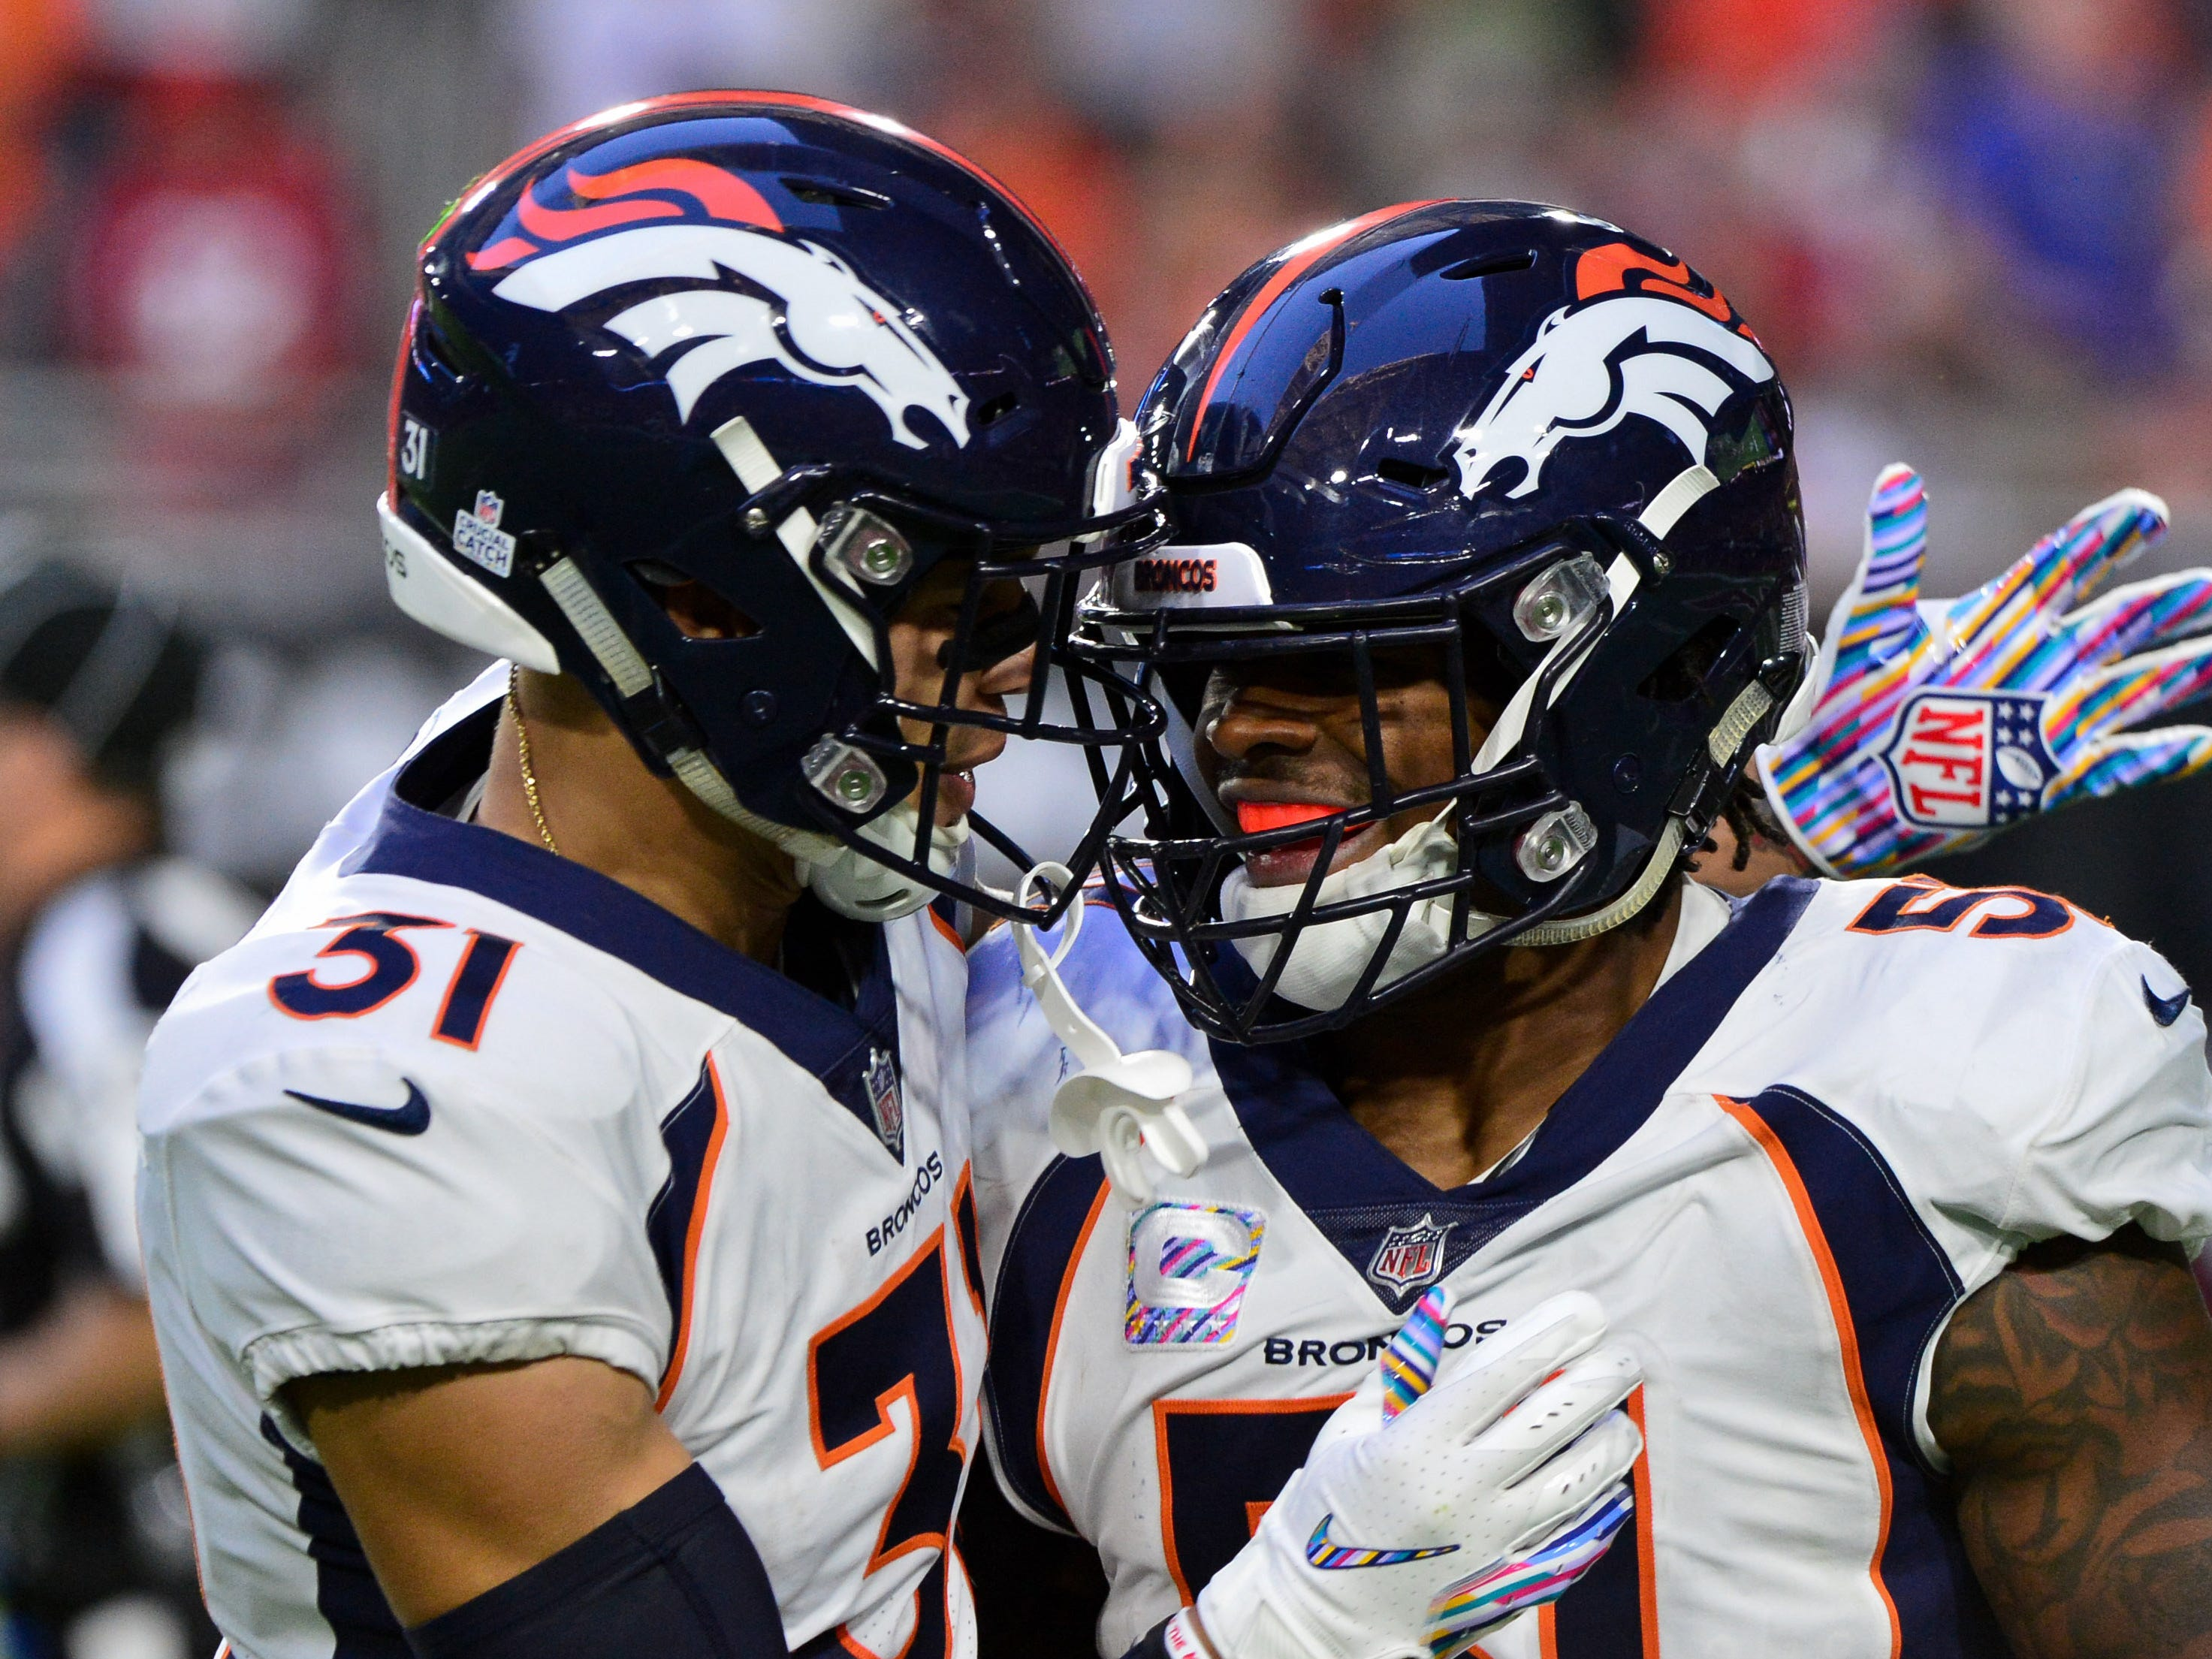 Oct 18, 2018; Glendale, AZ, USA; Denver Broncos linebacker Todd Davis (51) celebrates with free safety Justin Simmons (31) after returning an interception for a touchdown during the first half against the Arizona Cardinals at State Farm Stadium.